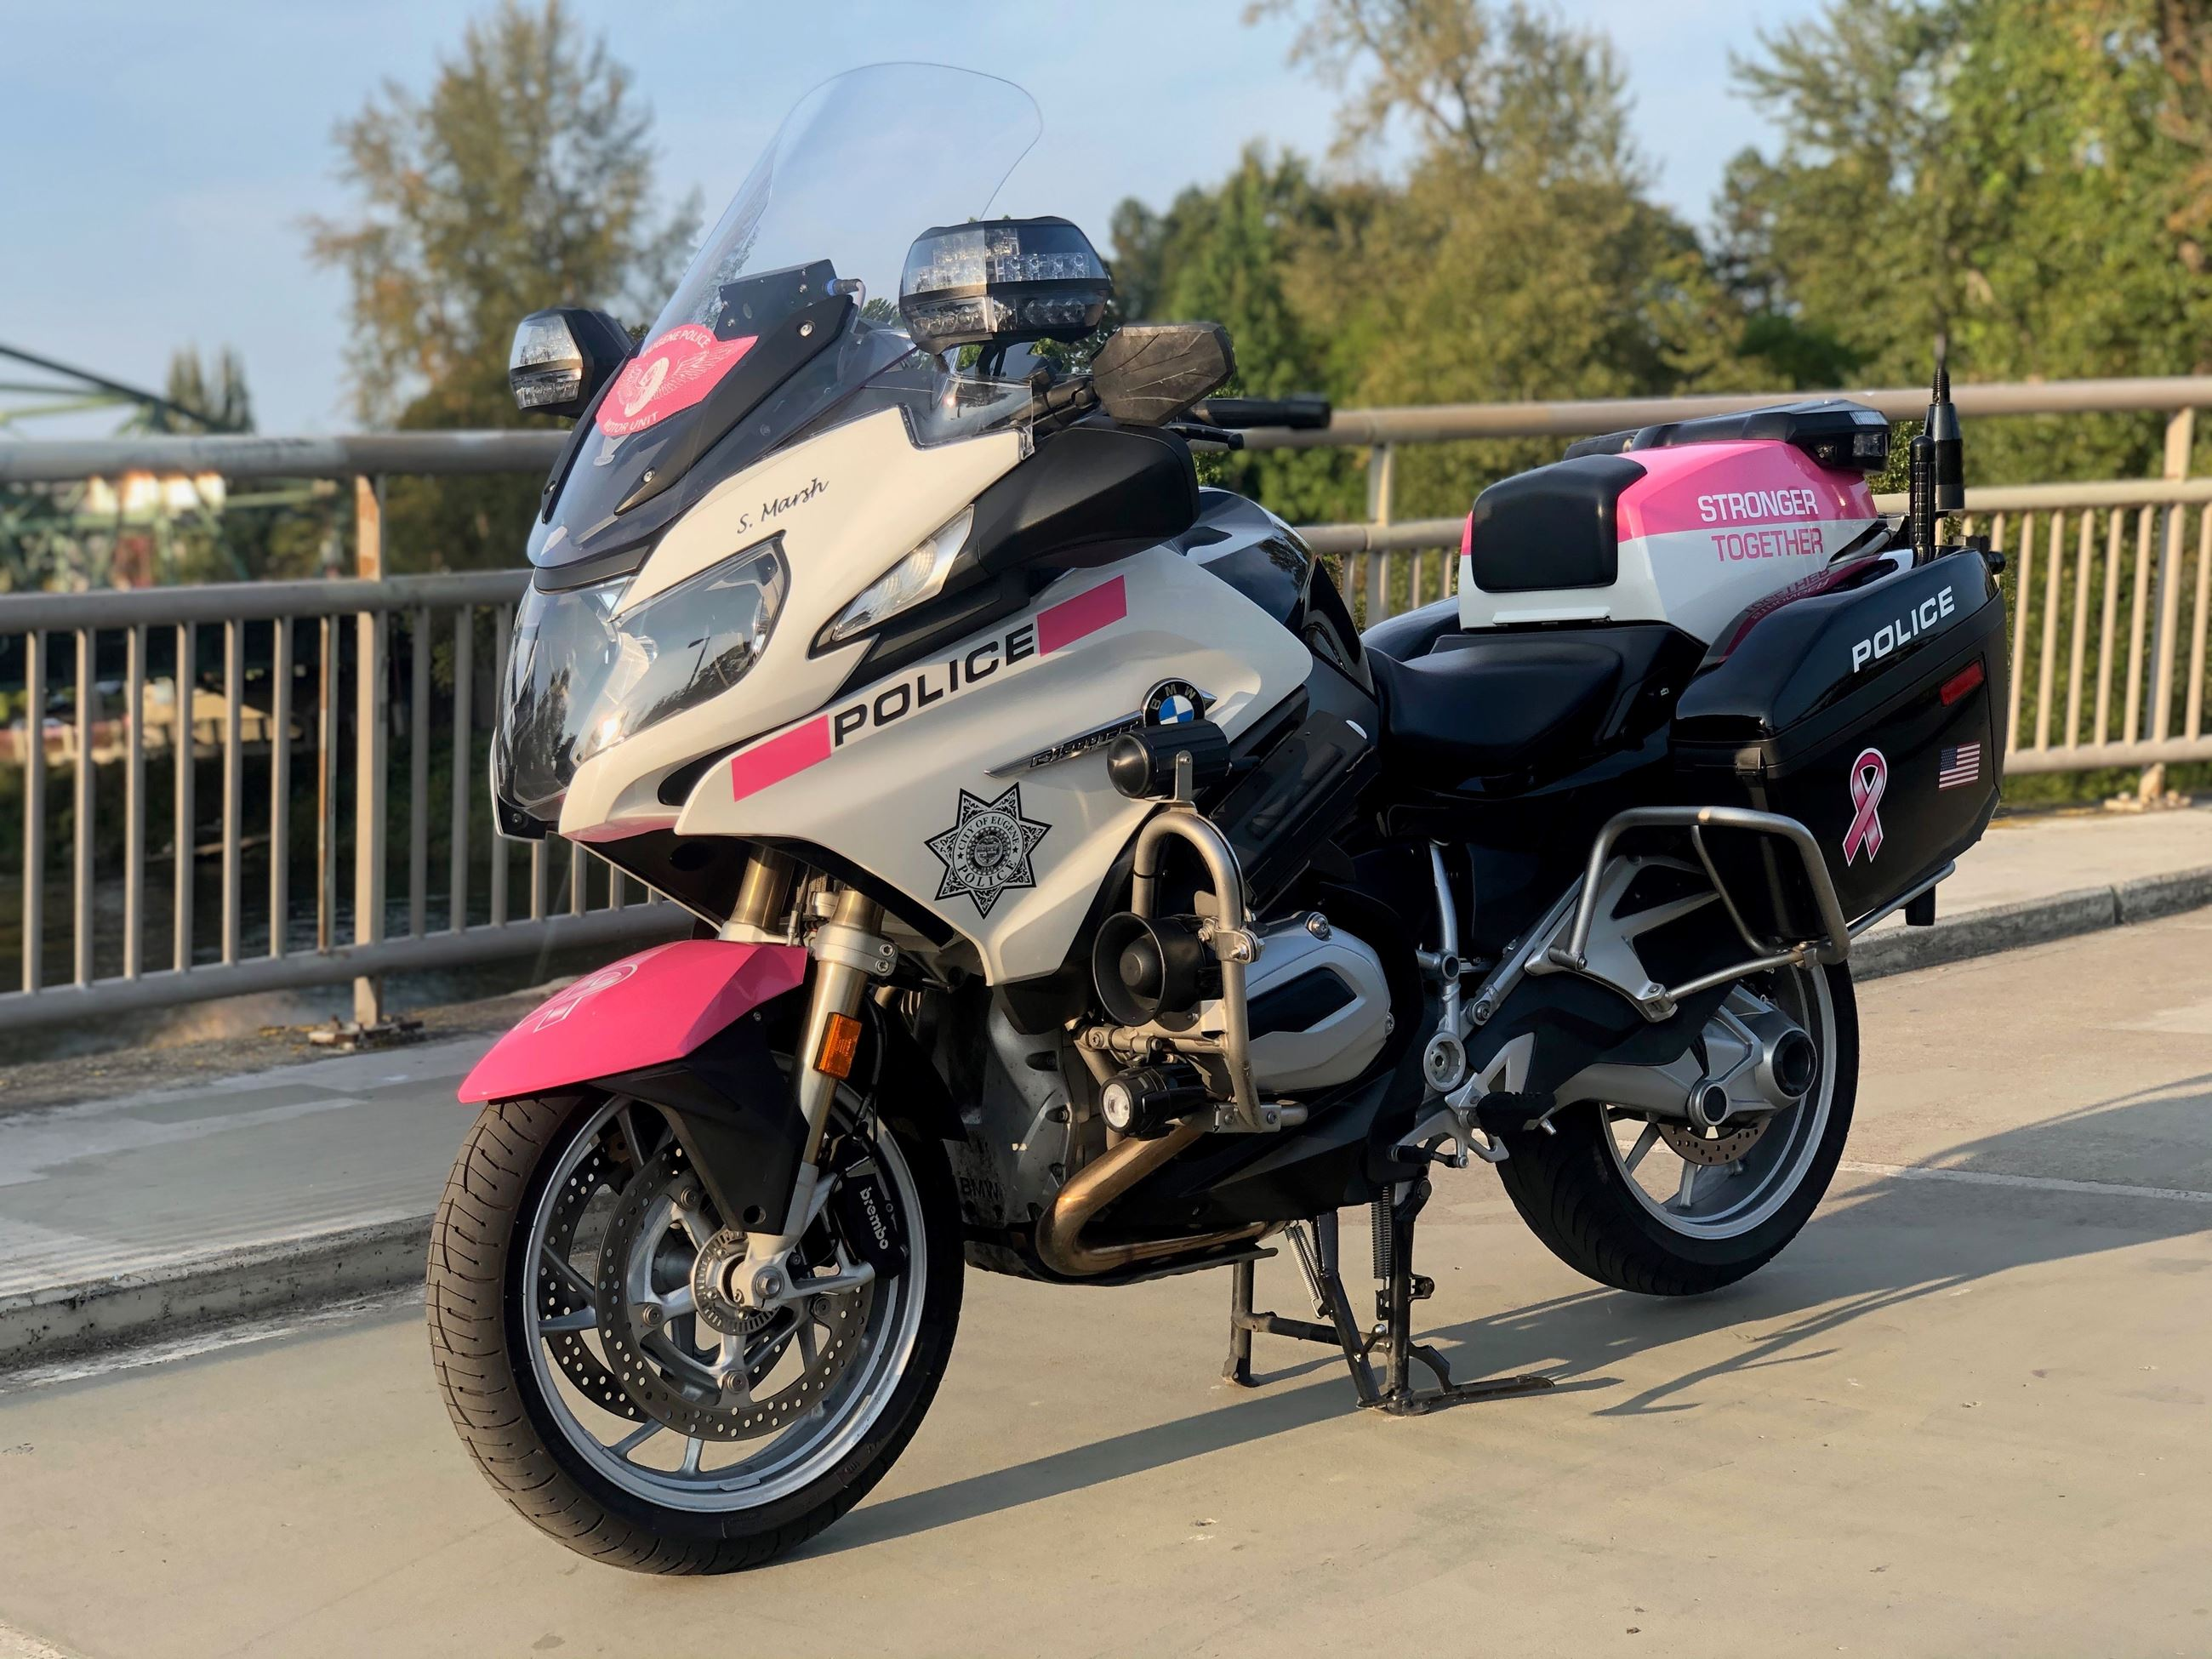 For Breast Cancer Awareness Month, Traffic Safety Unit Motorcycle Gets Pink Graphics